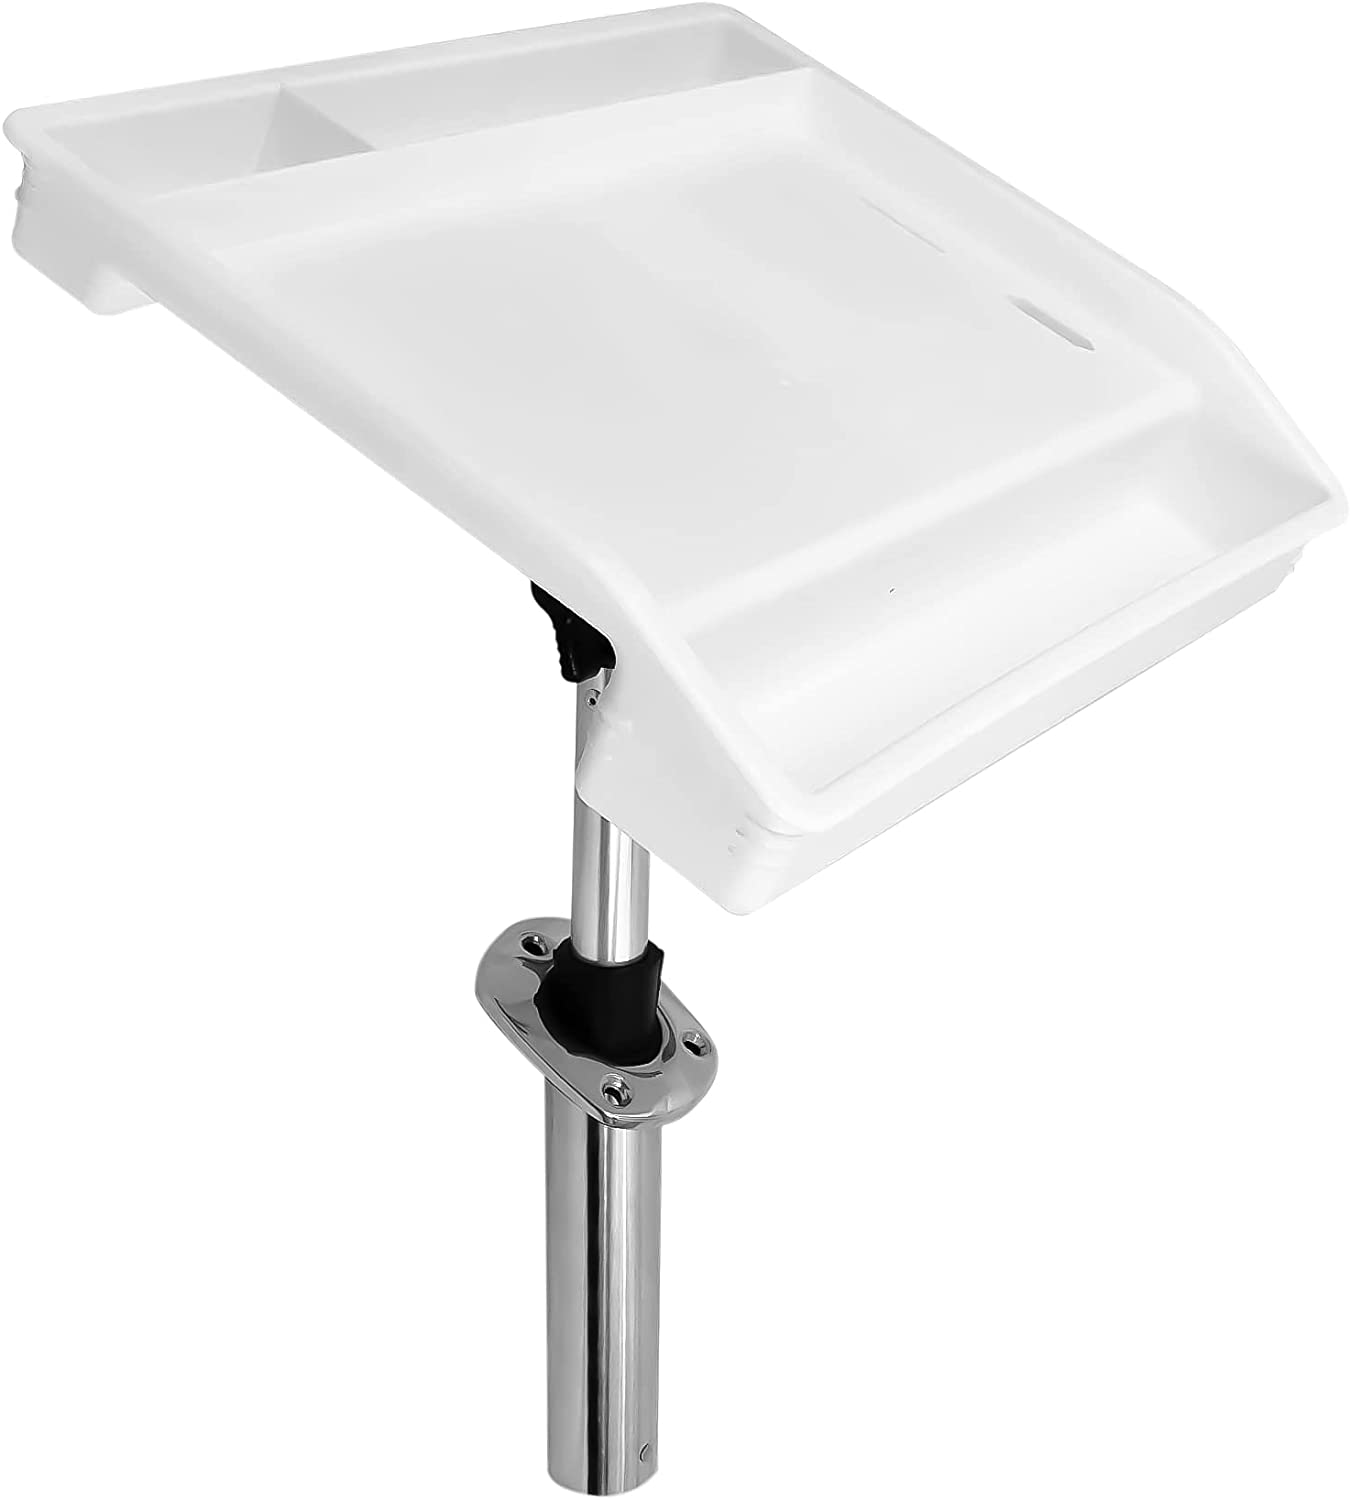 Five Oceans White Bait Fillet Factory outlet Serving Board Table Ho Rod Cutting All items in the store